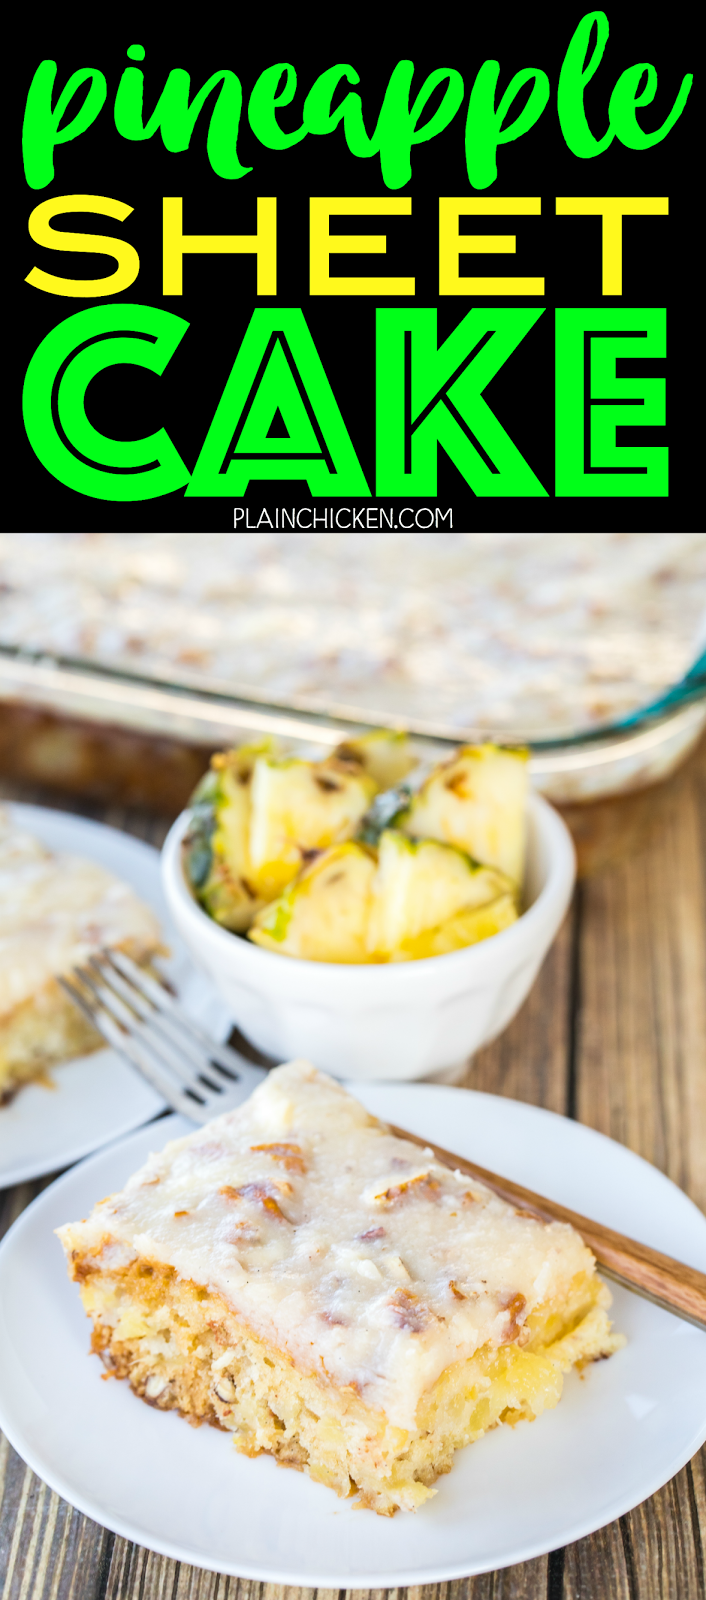 Pineapple Sheet Cake - seriously delicious! Easy pineapple cake with a delicious cream cheese frosting! Sugar, flour, baking soda, vanilla, crushed pineapple, pecans, butter, cream cheese. Great for cookouts and potlucks. Can make ahead of time and refrigerate until ready to serve.